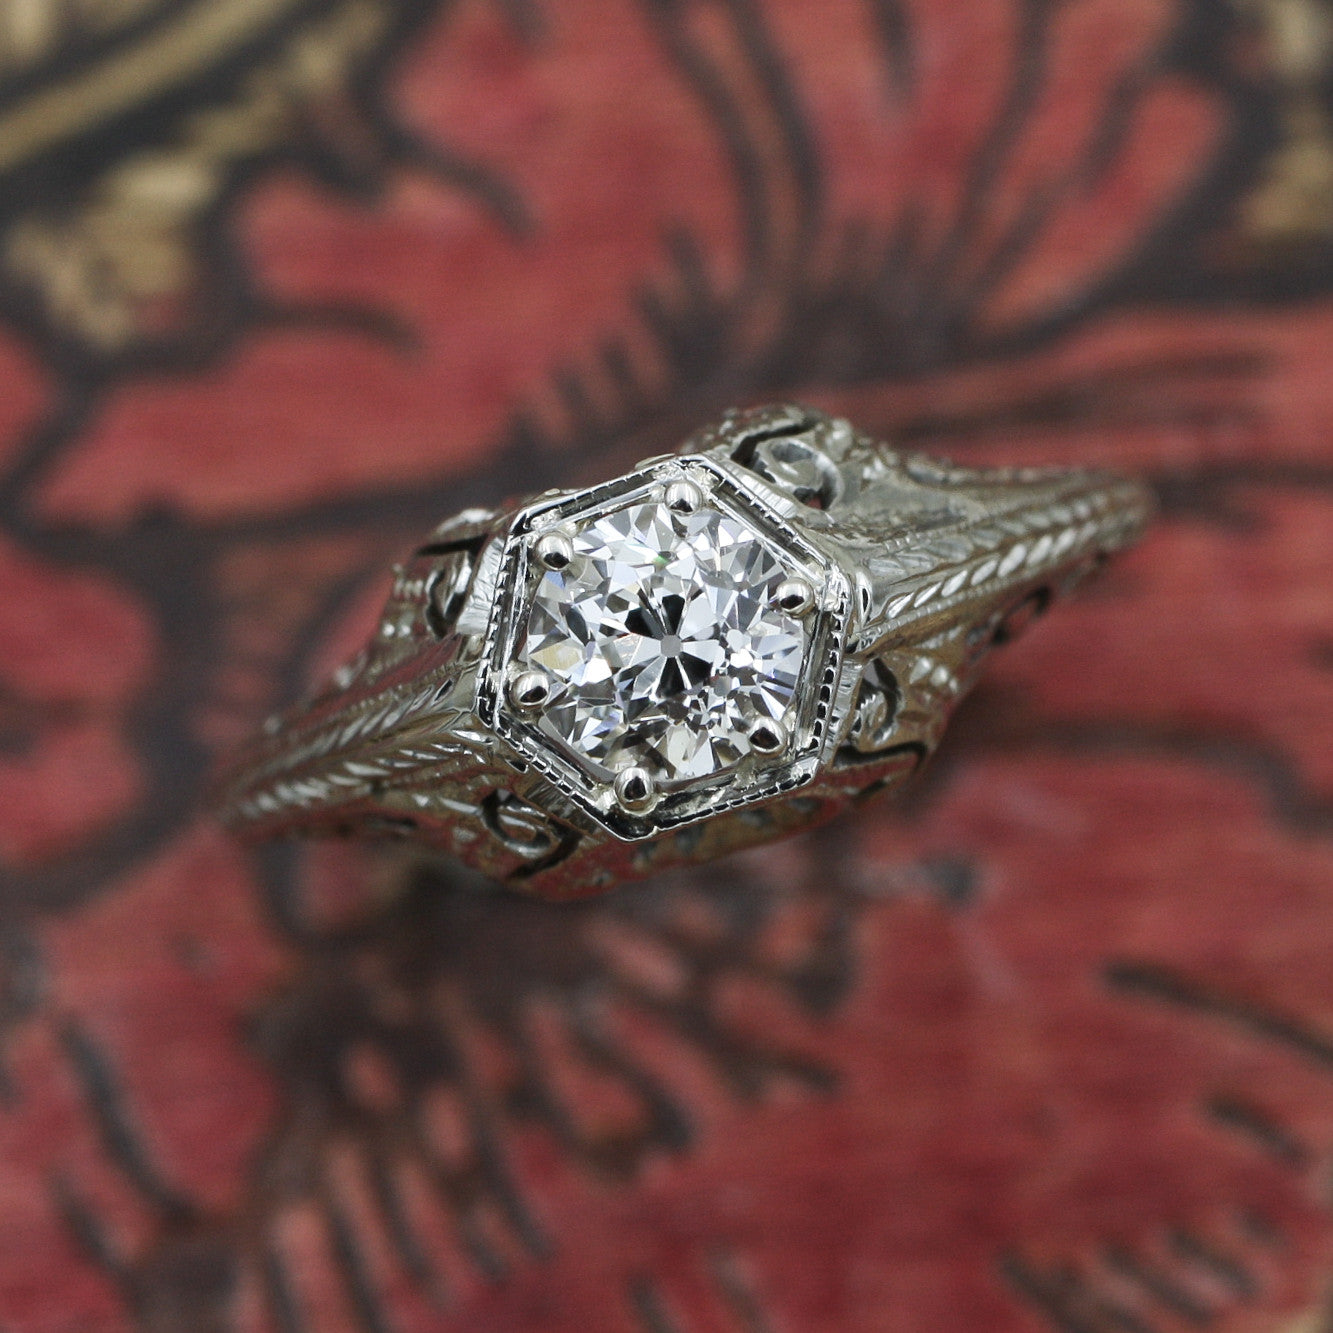 1920s Tall 18k Filigree GIA Certified Diamond Solitaire- Top View